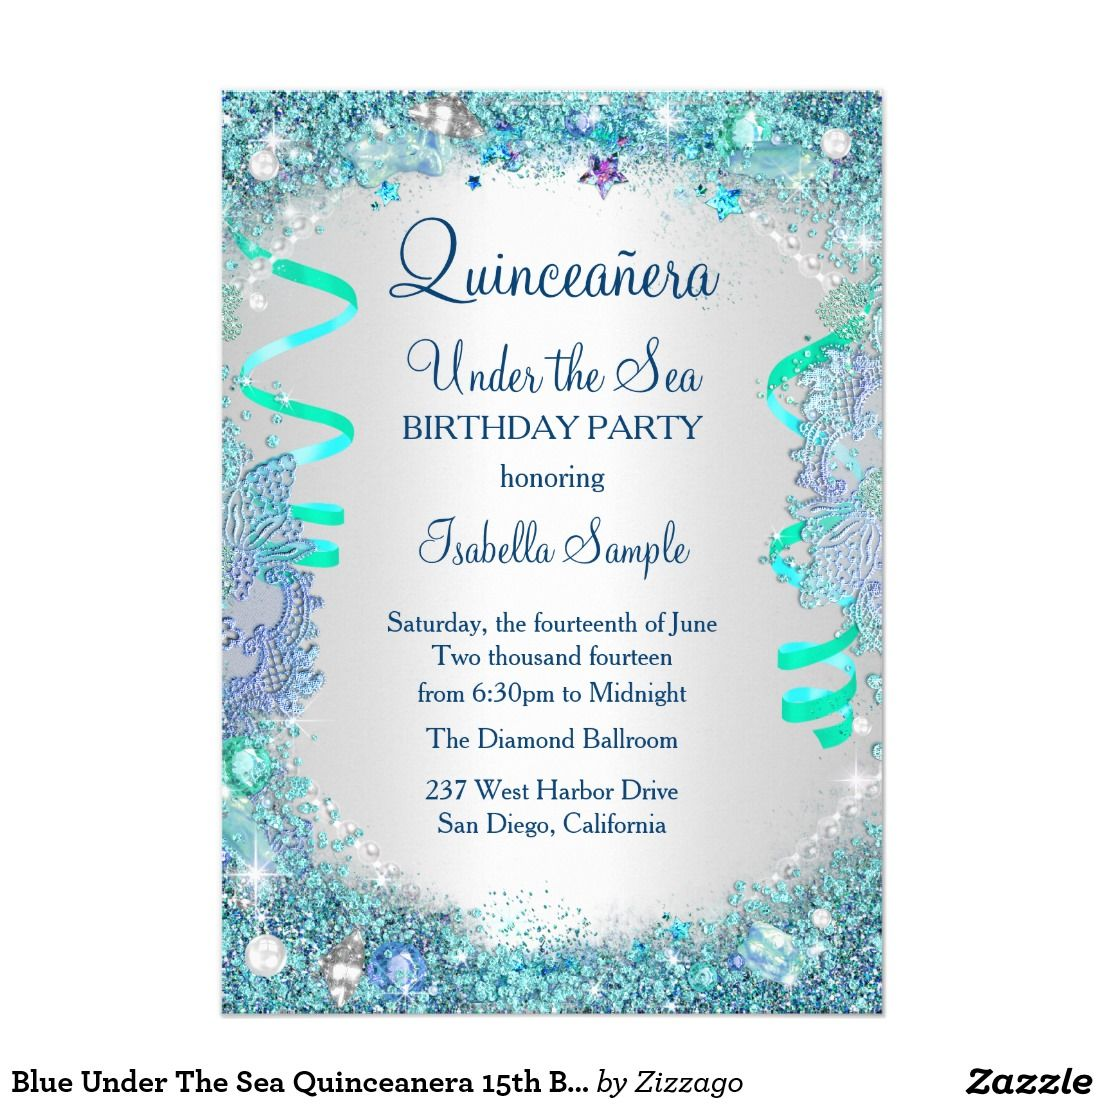 Blue Under The Sea Quinceanera 15th Birthday Party Invitation ...